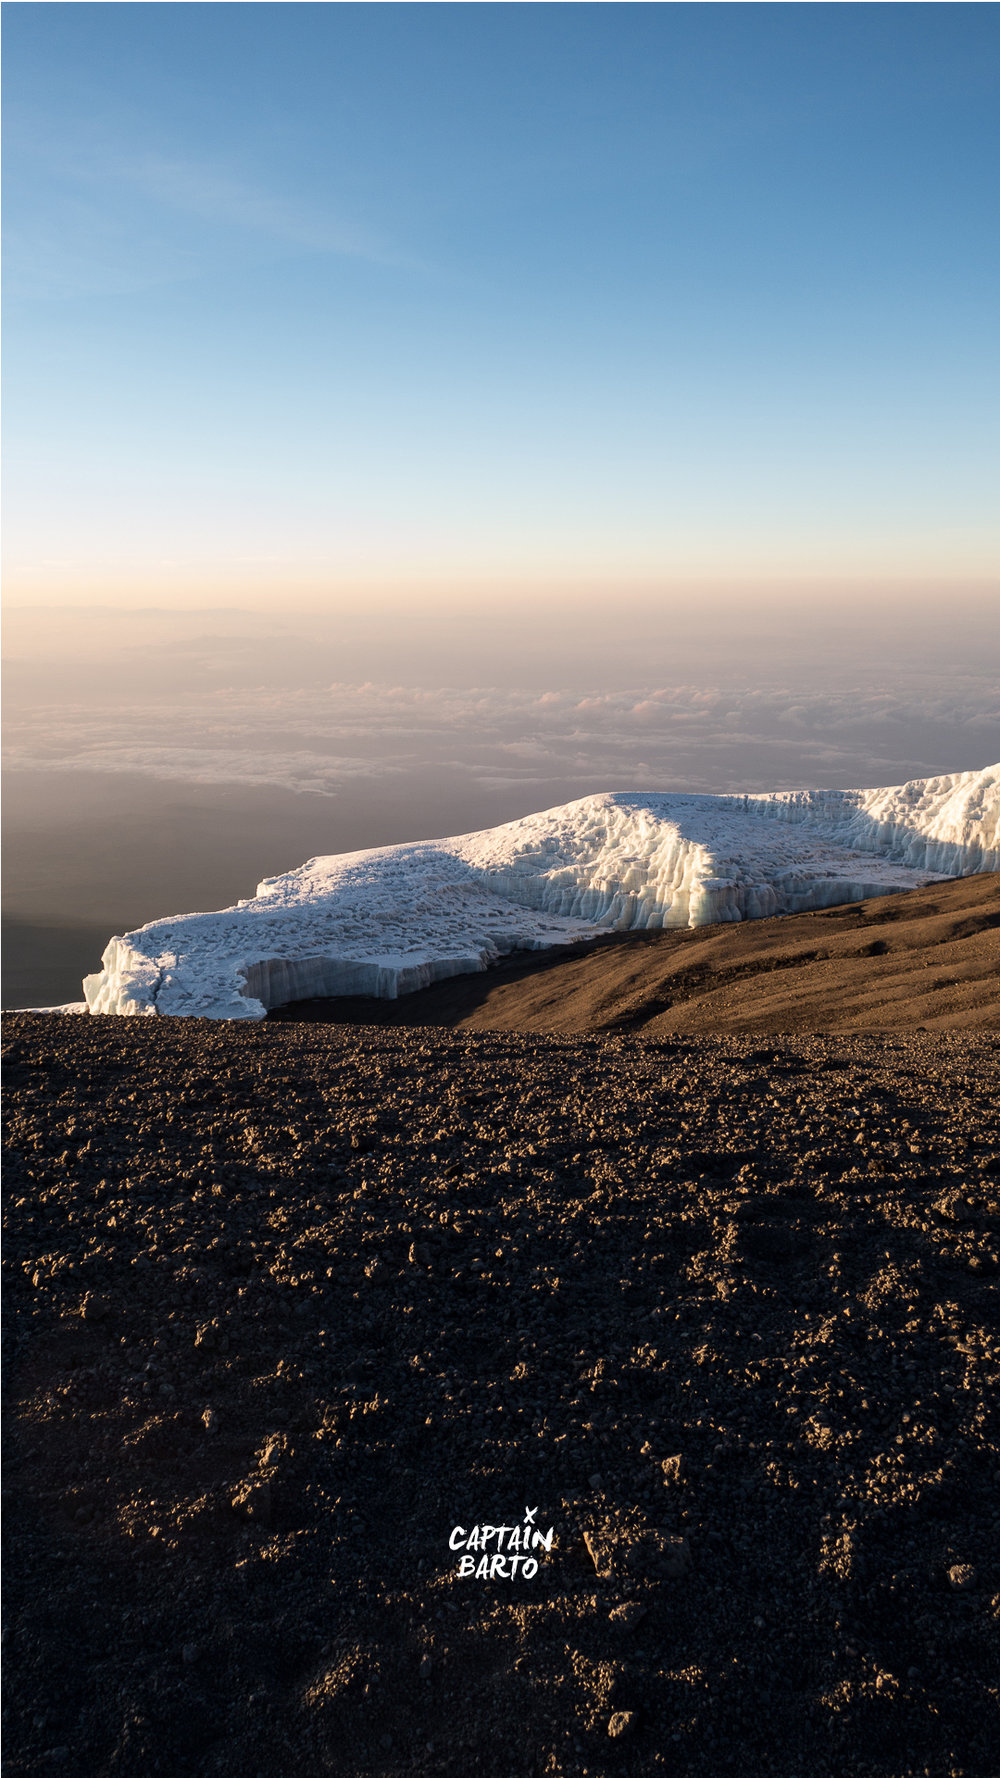 captainbarto-blog-wallpaper-climbing-mtkilimanjaro-110817-12.jpg